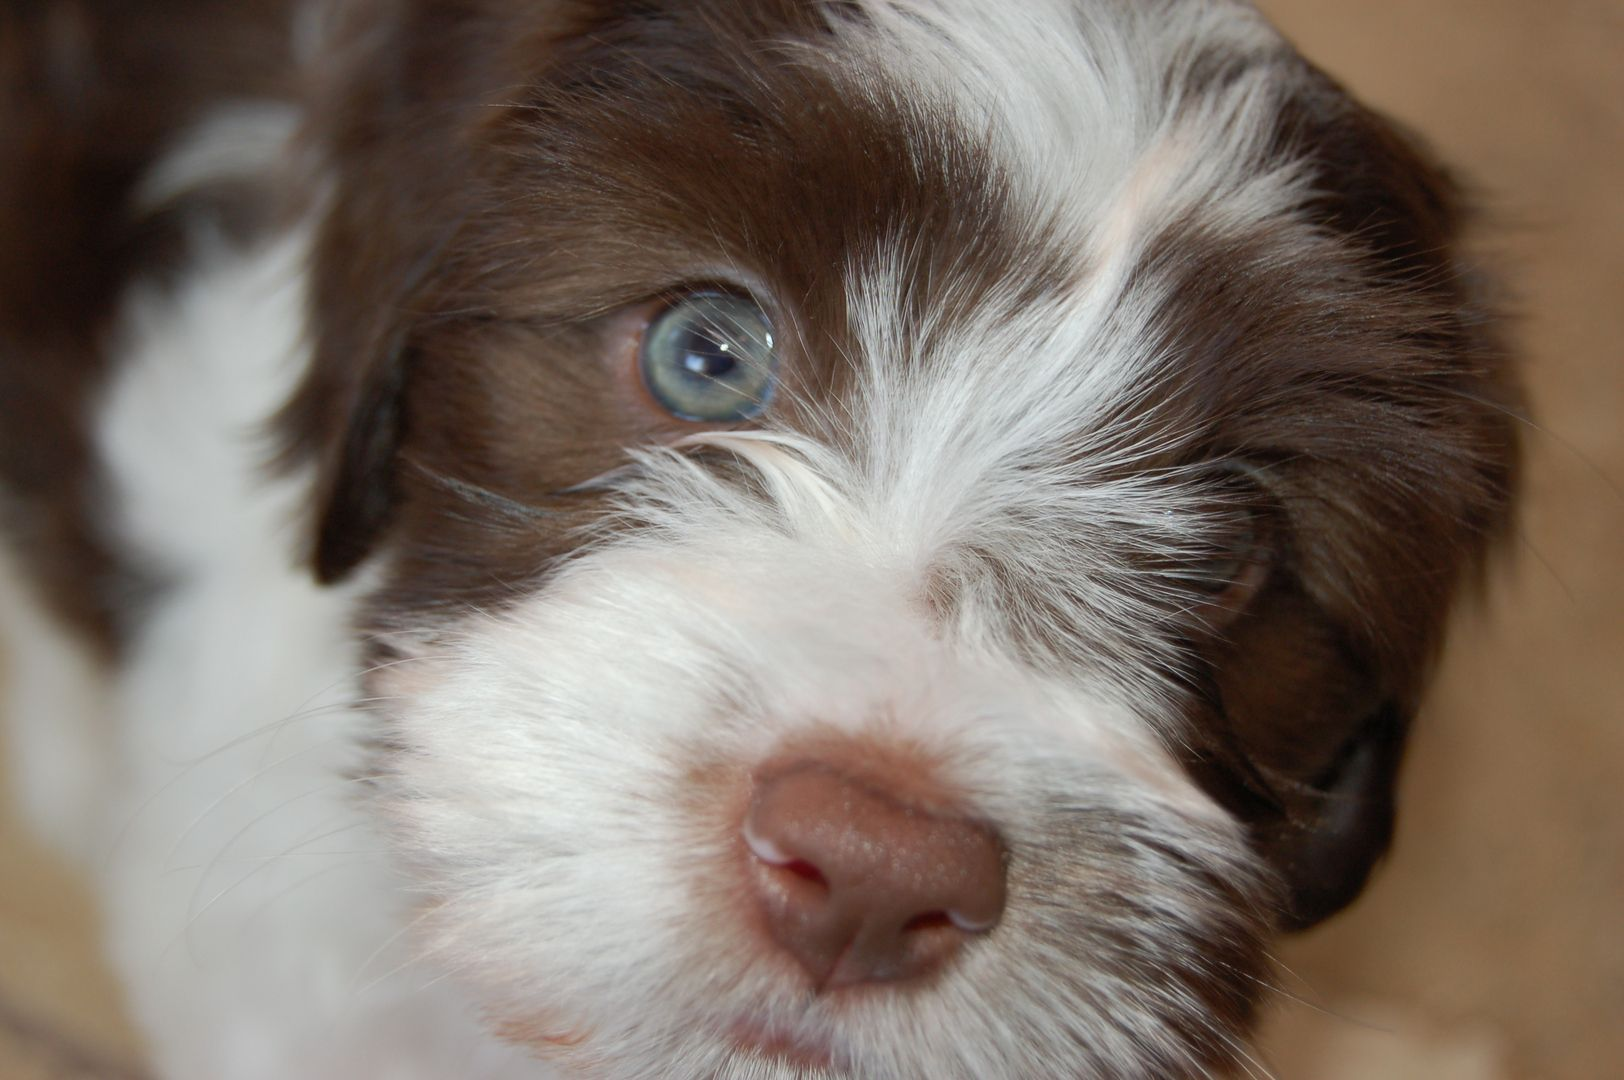 Akc Chocolate Puppies For Sale in Maine, Toy Dog Maine